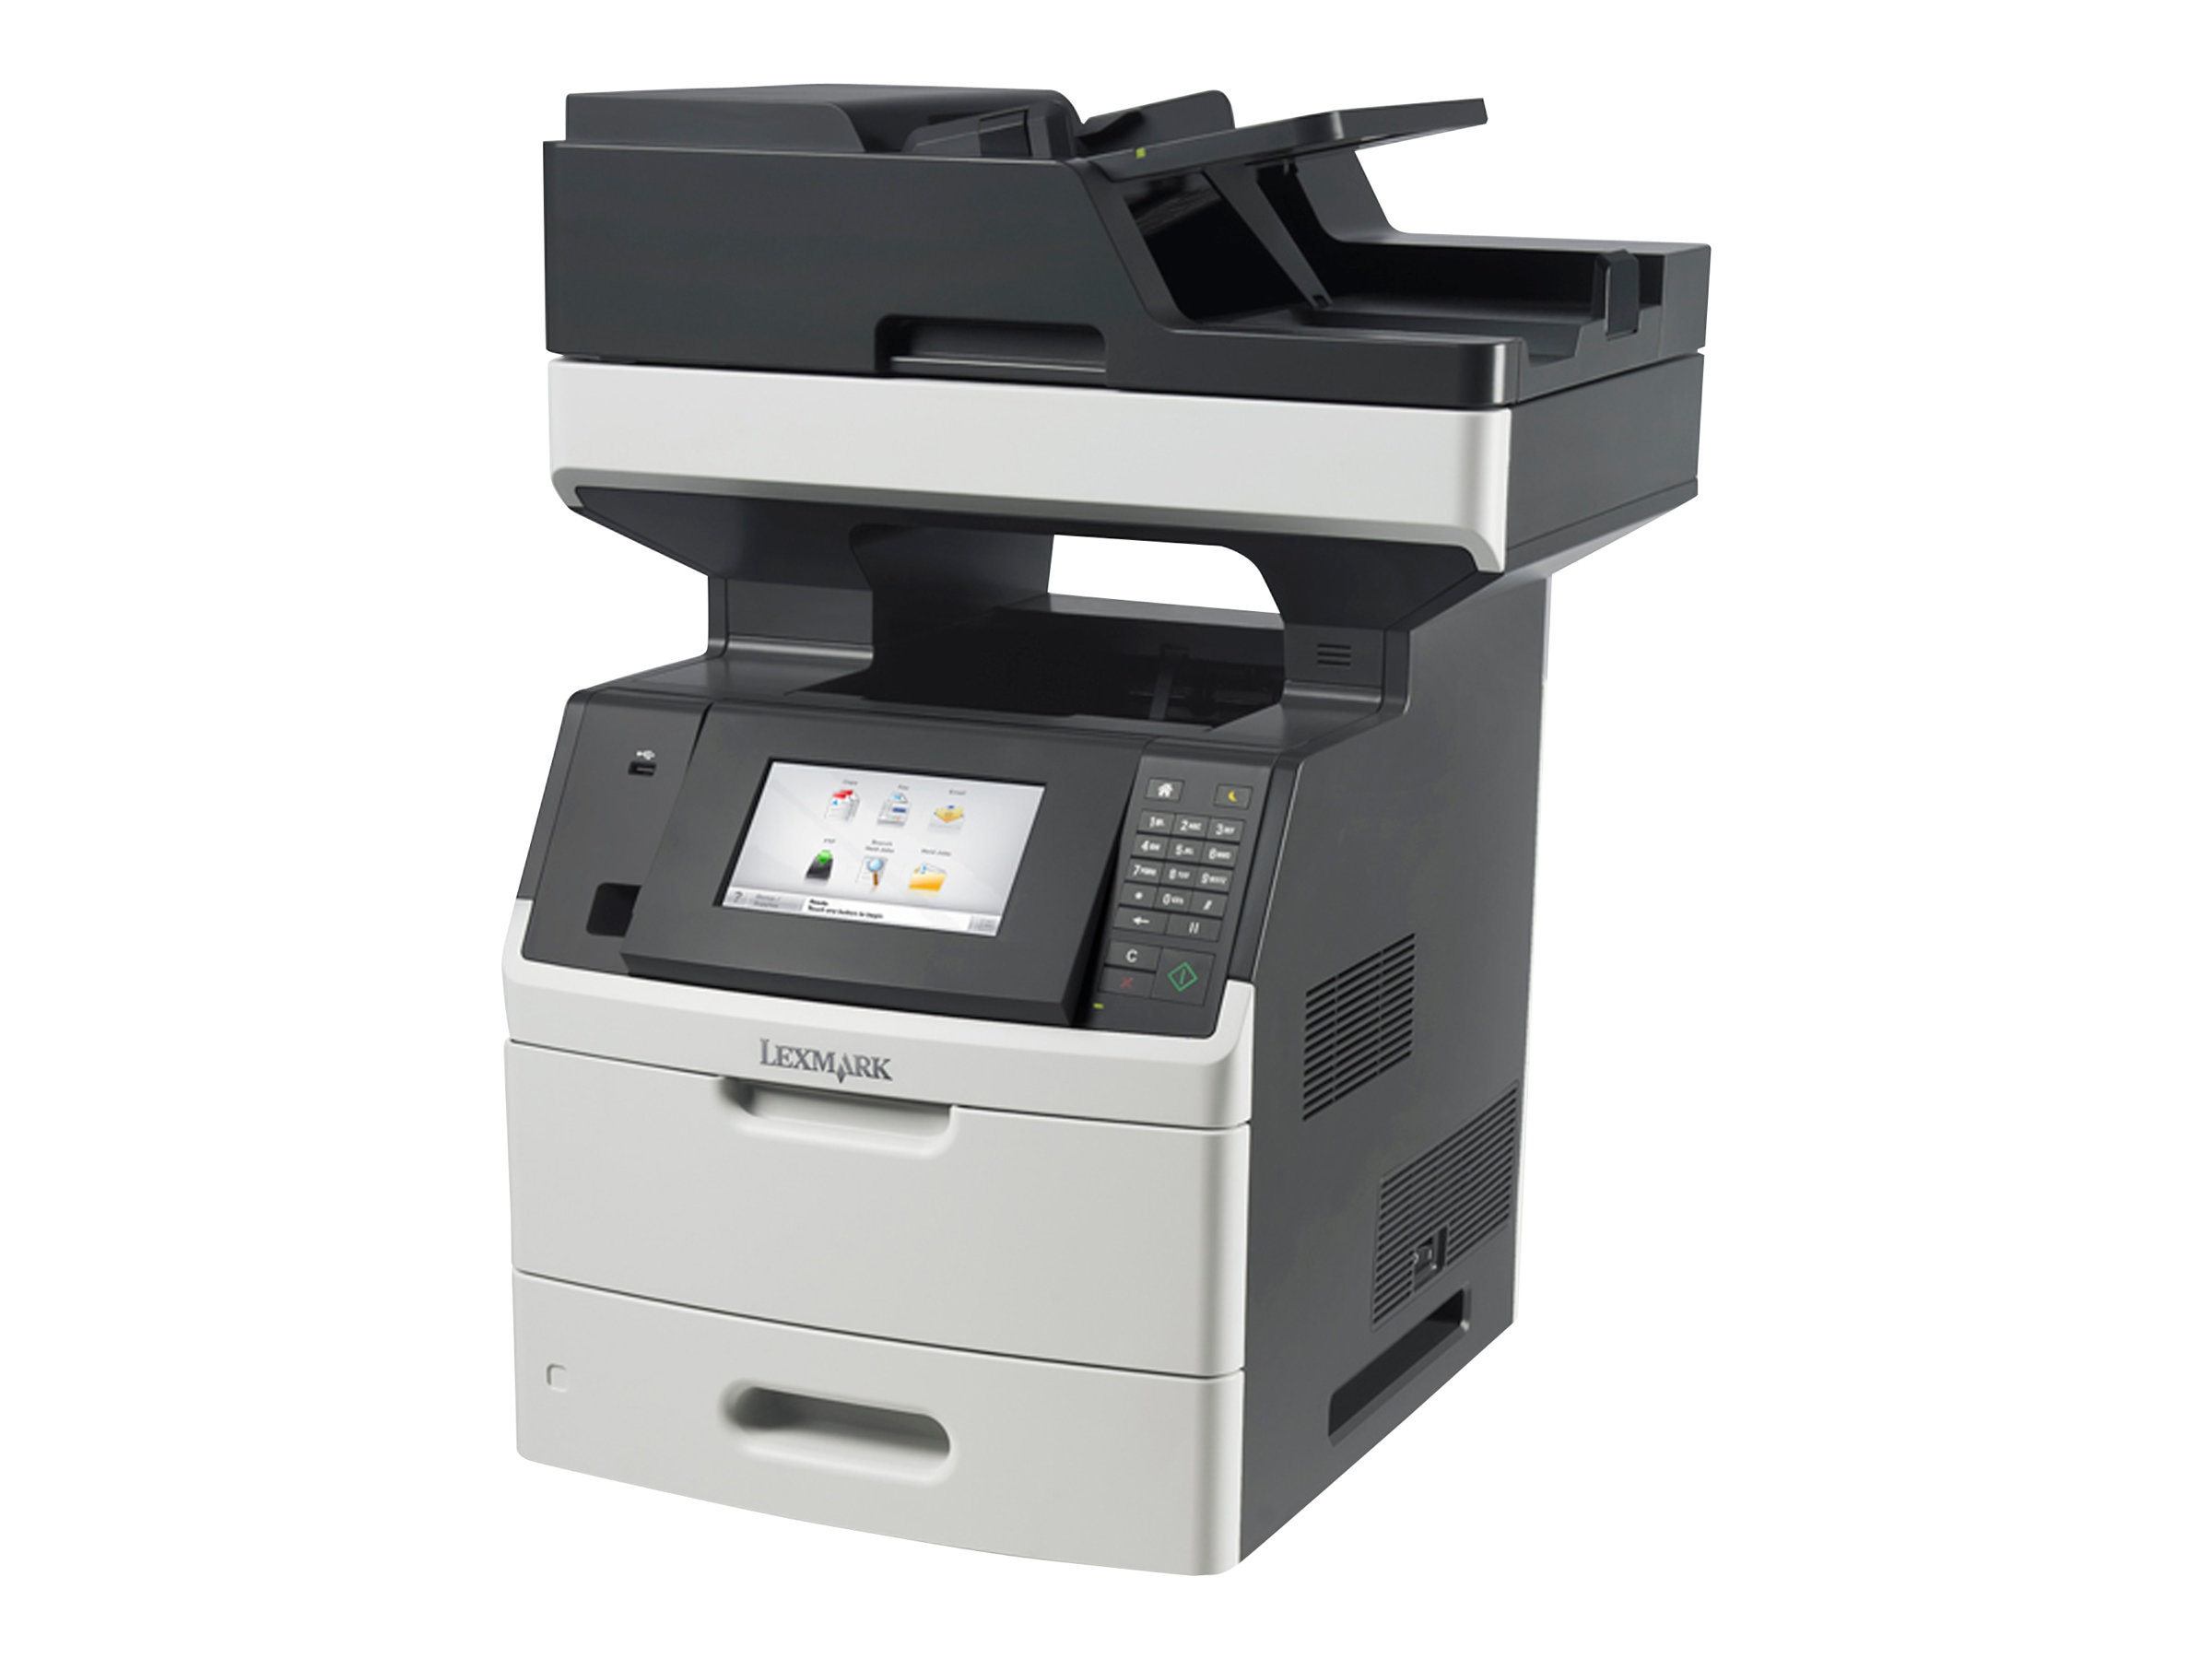 Lexmark MX710de Monochrome Laser Multifunction Printer